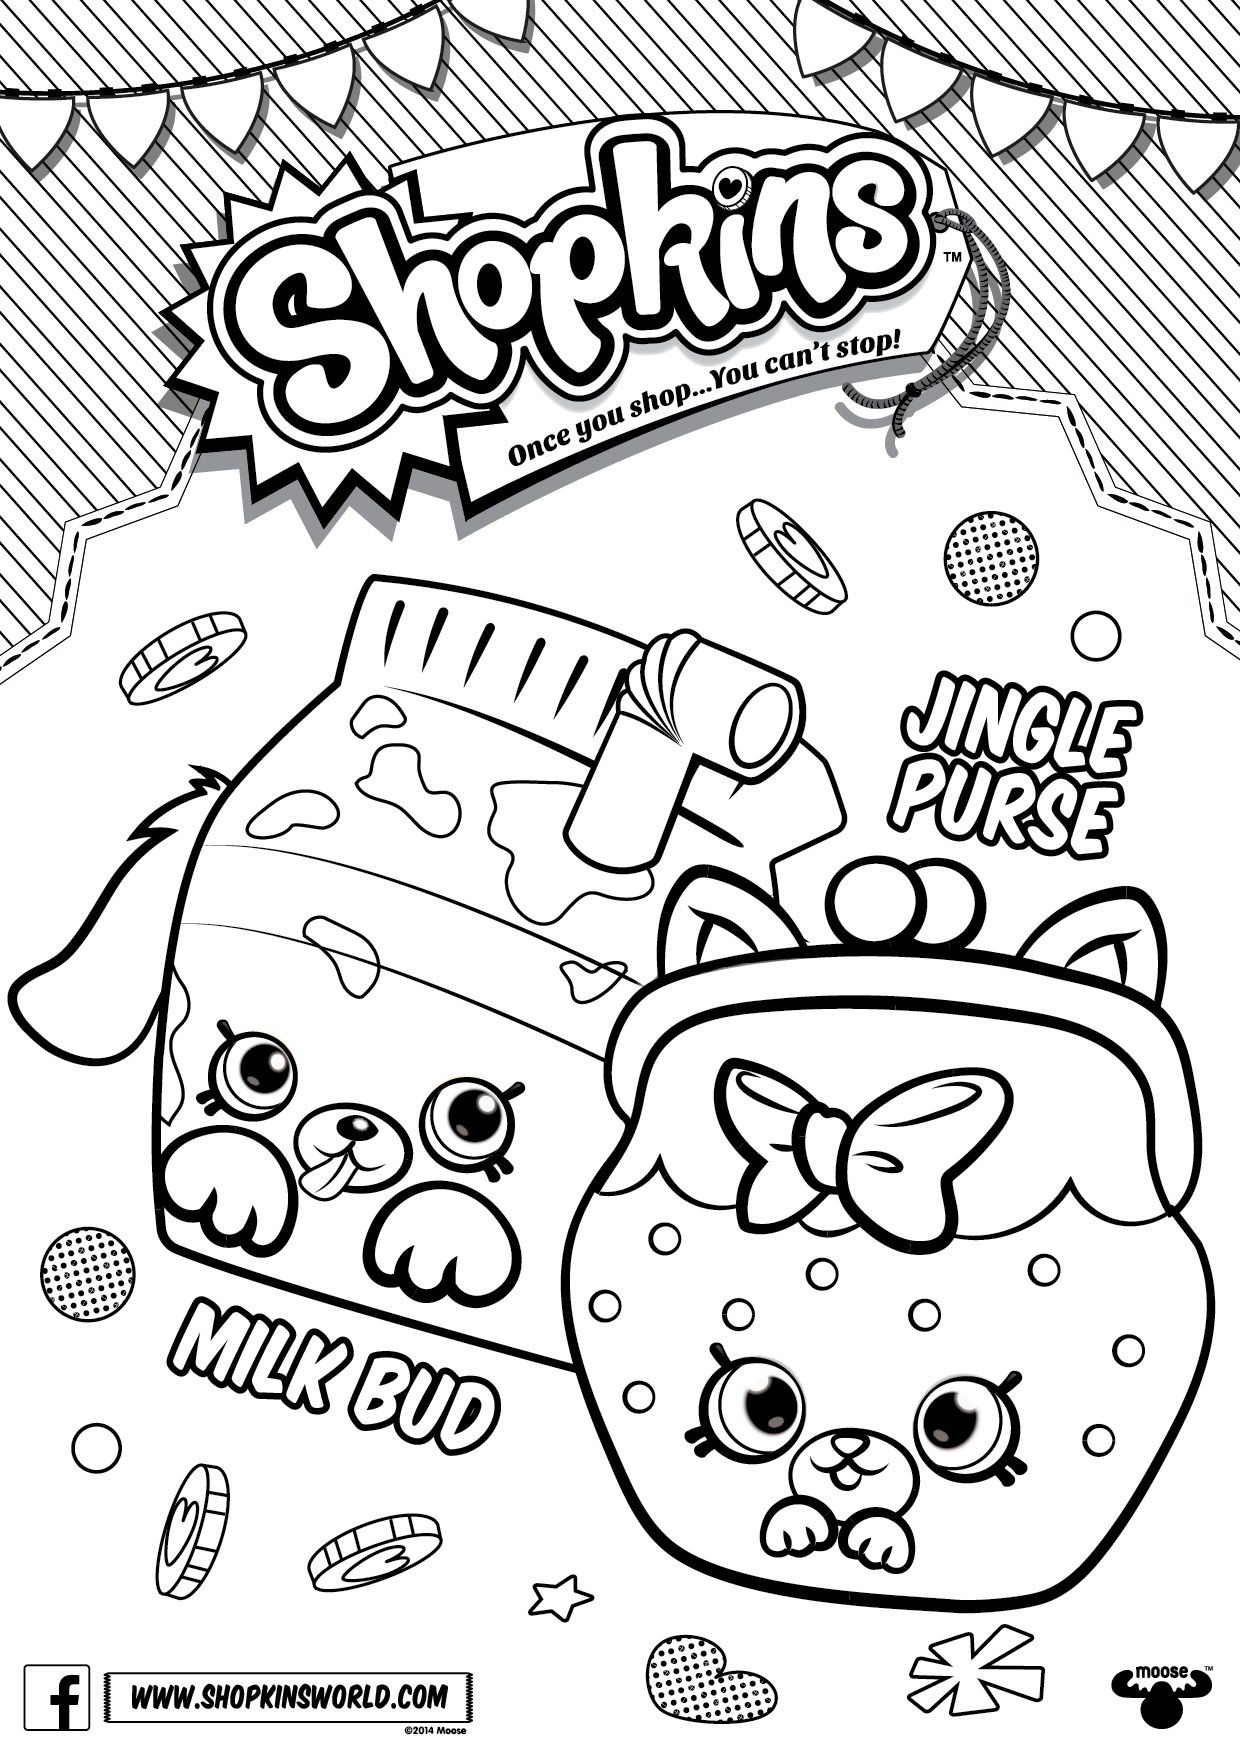 Shopkins Coloring Pages Season 4 Petkins Jingle Purse Milk Bud Shopkins colouring pages